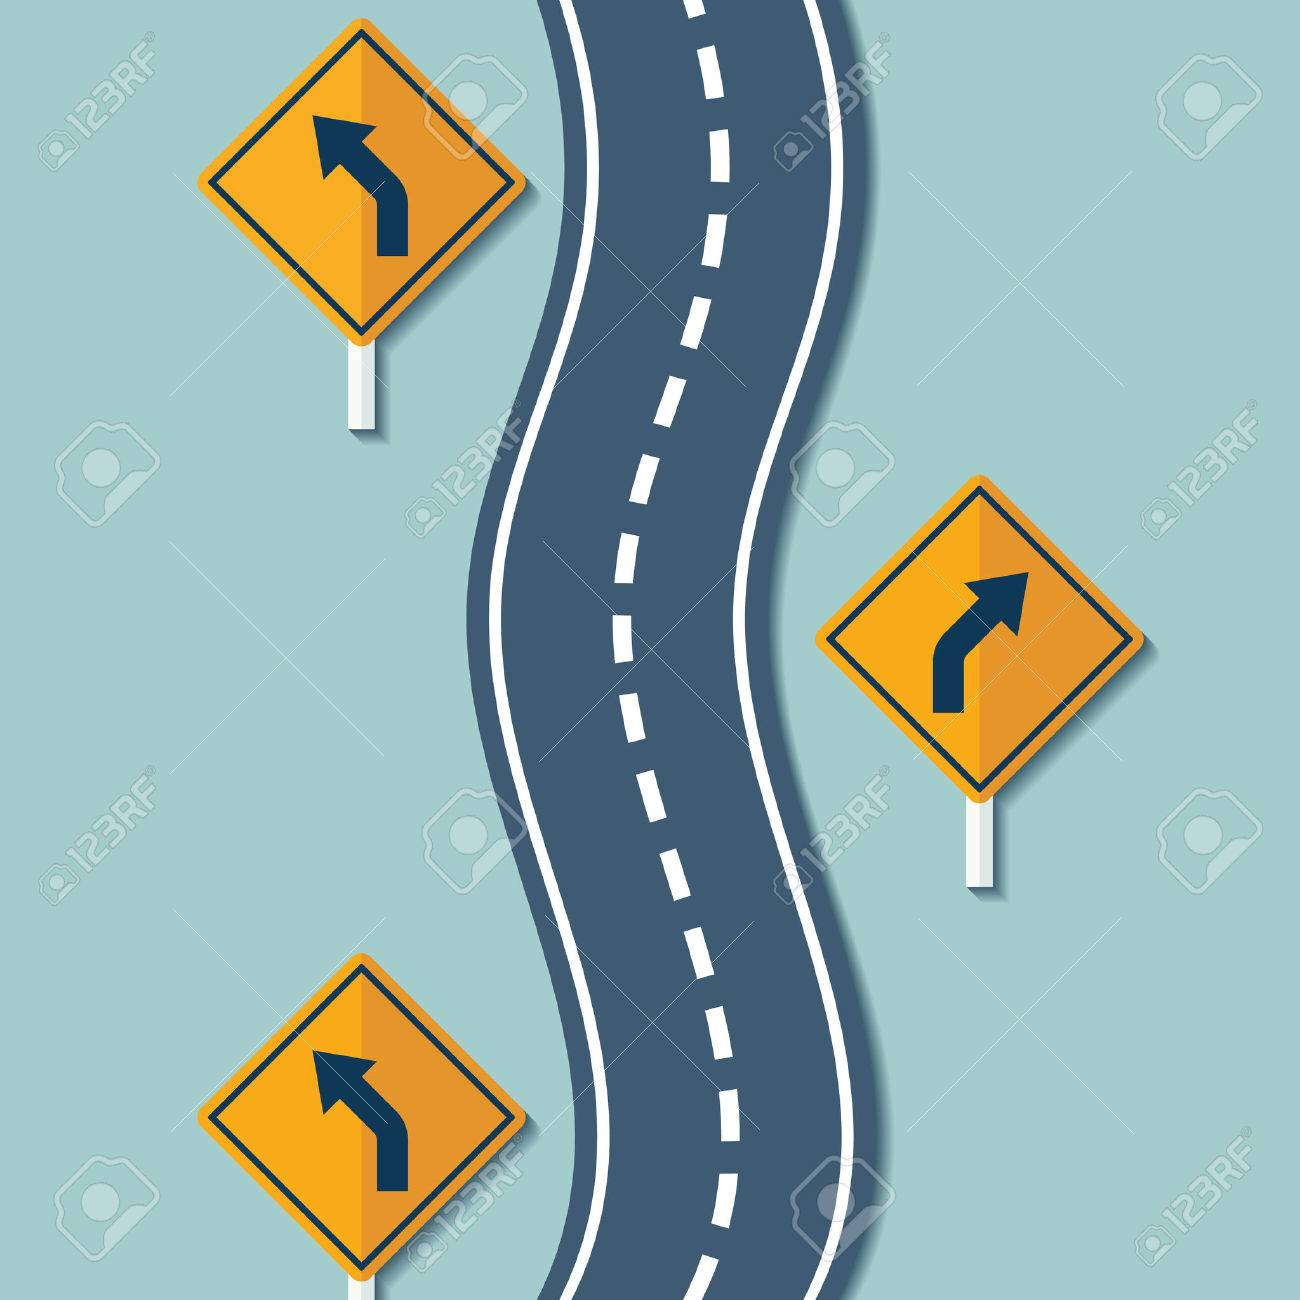 Winding road and warning signs. Flat graphics. Vector Stock illustration. - 51838118